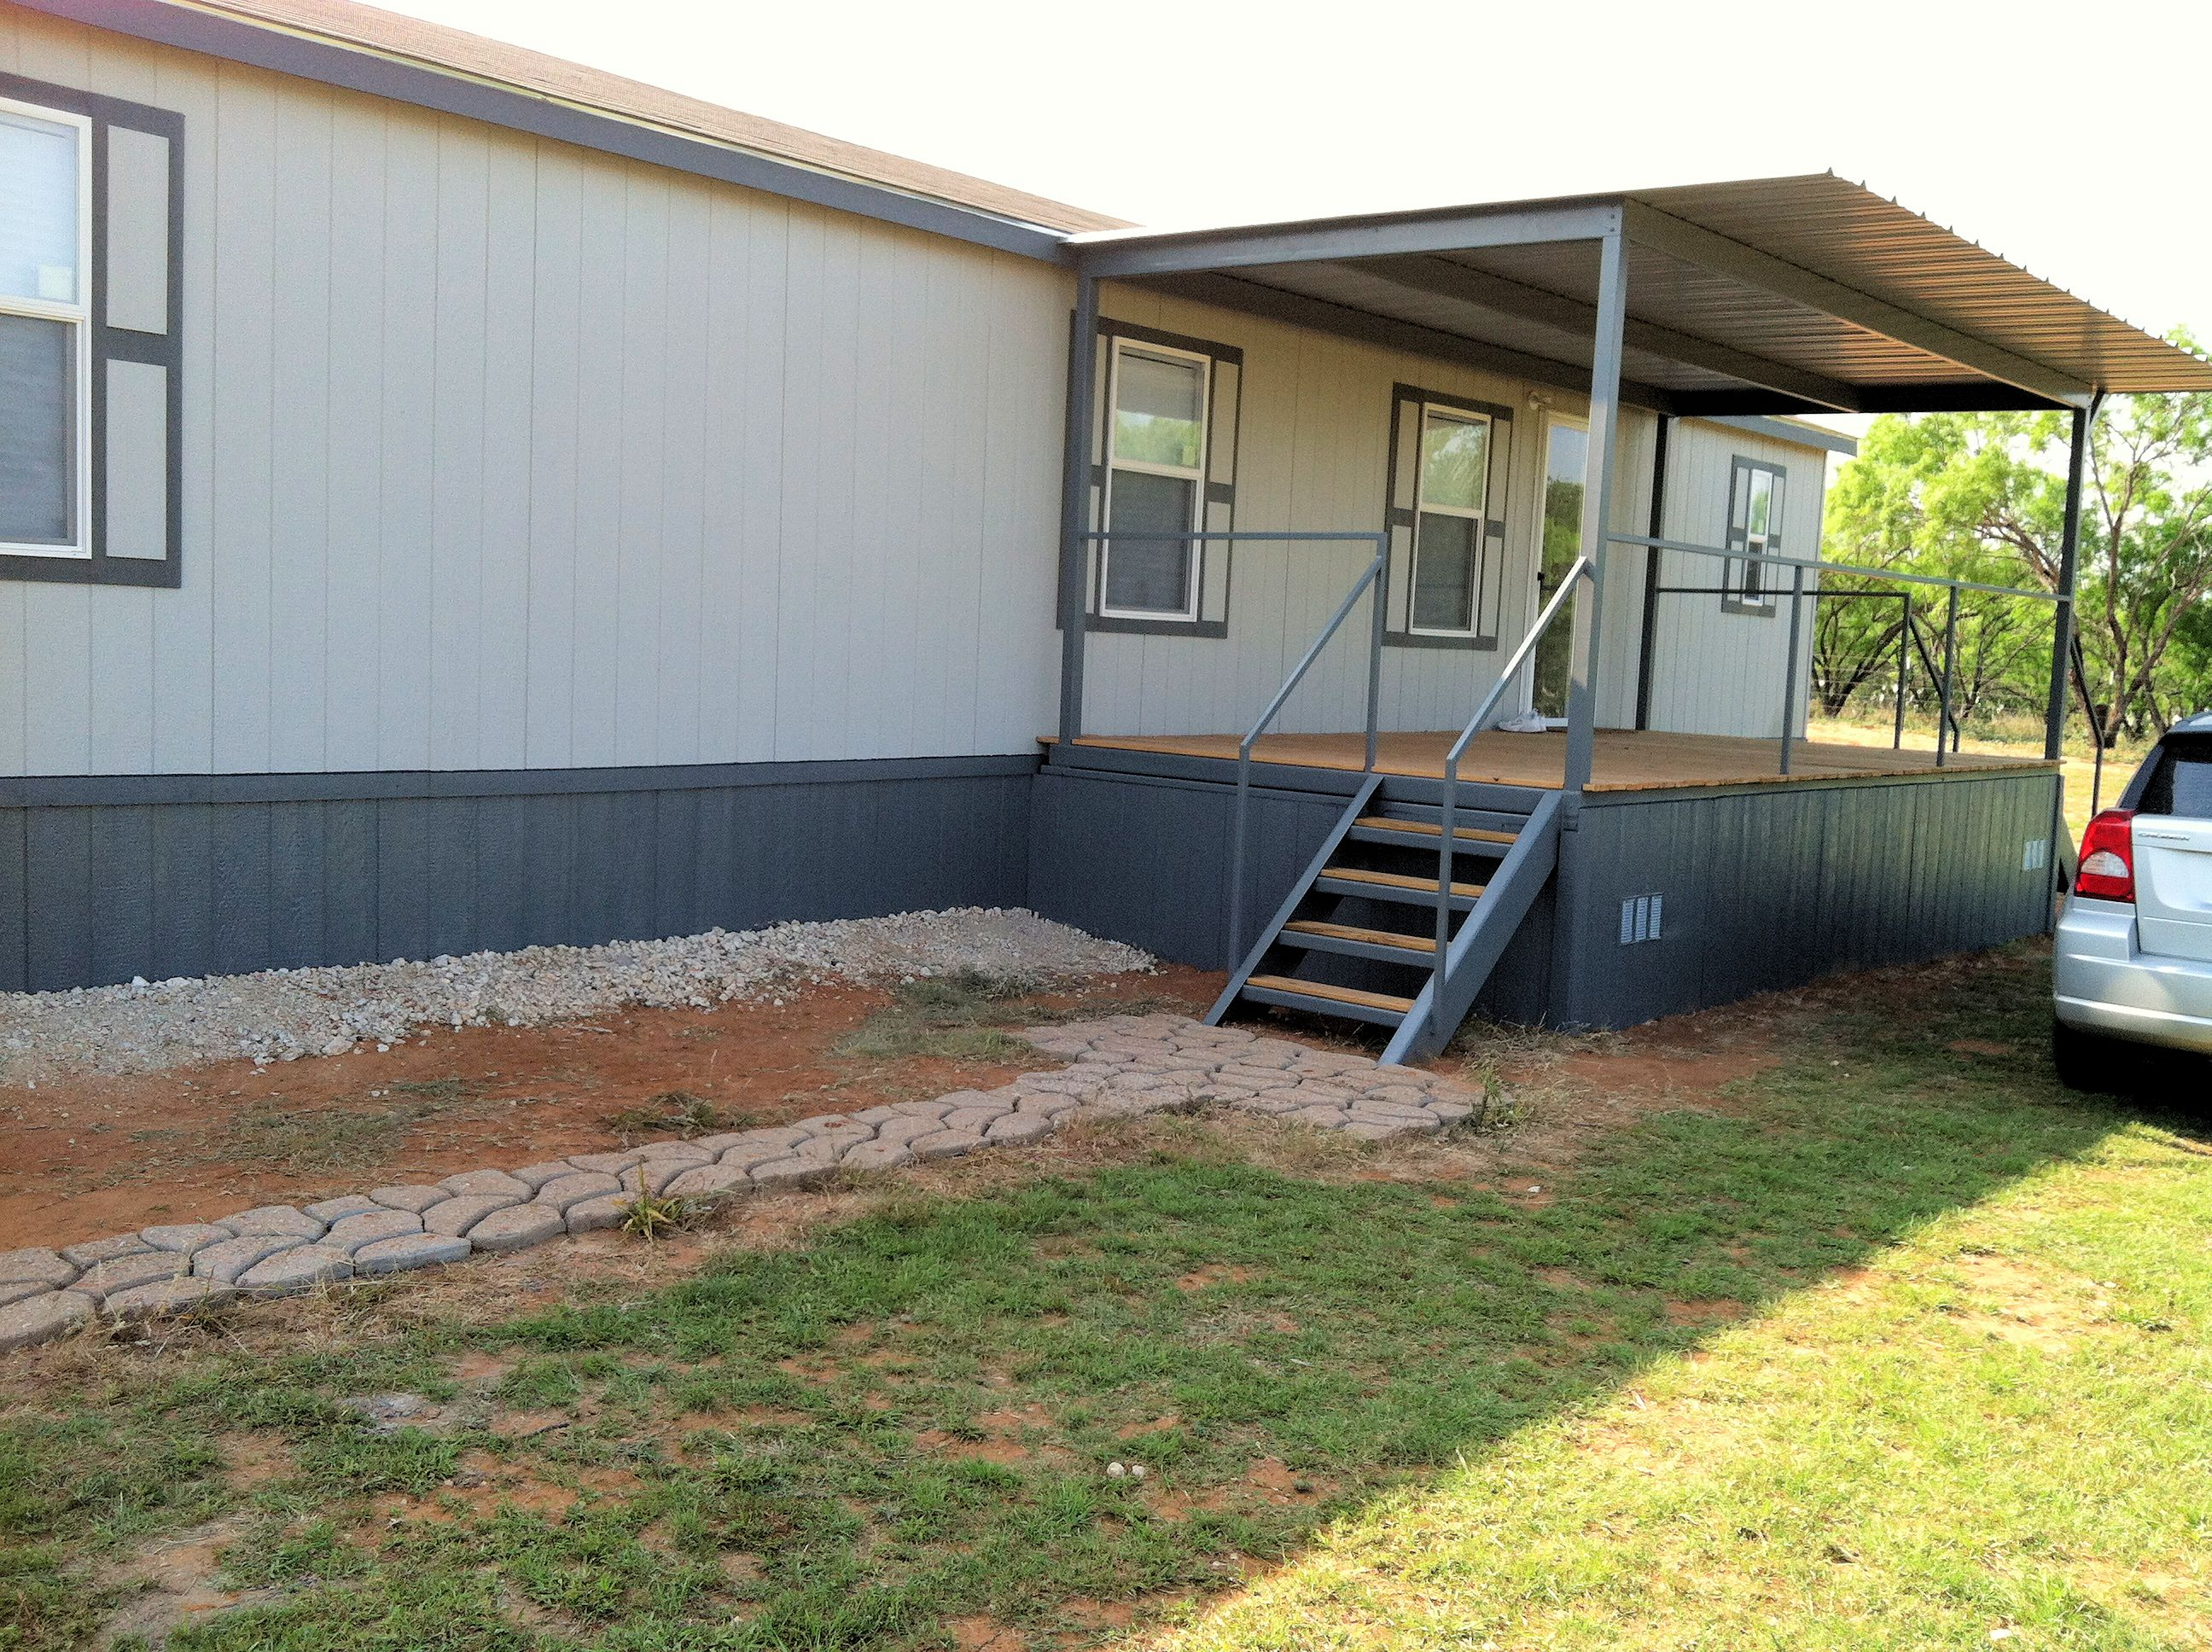 All Steel Awning Patio Cover Deck Ramp Charlotte Atascosa